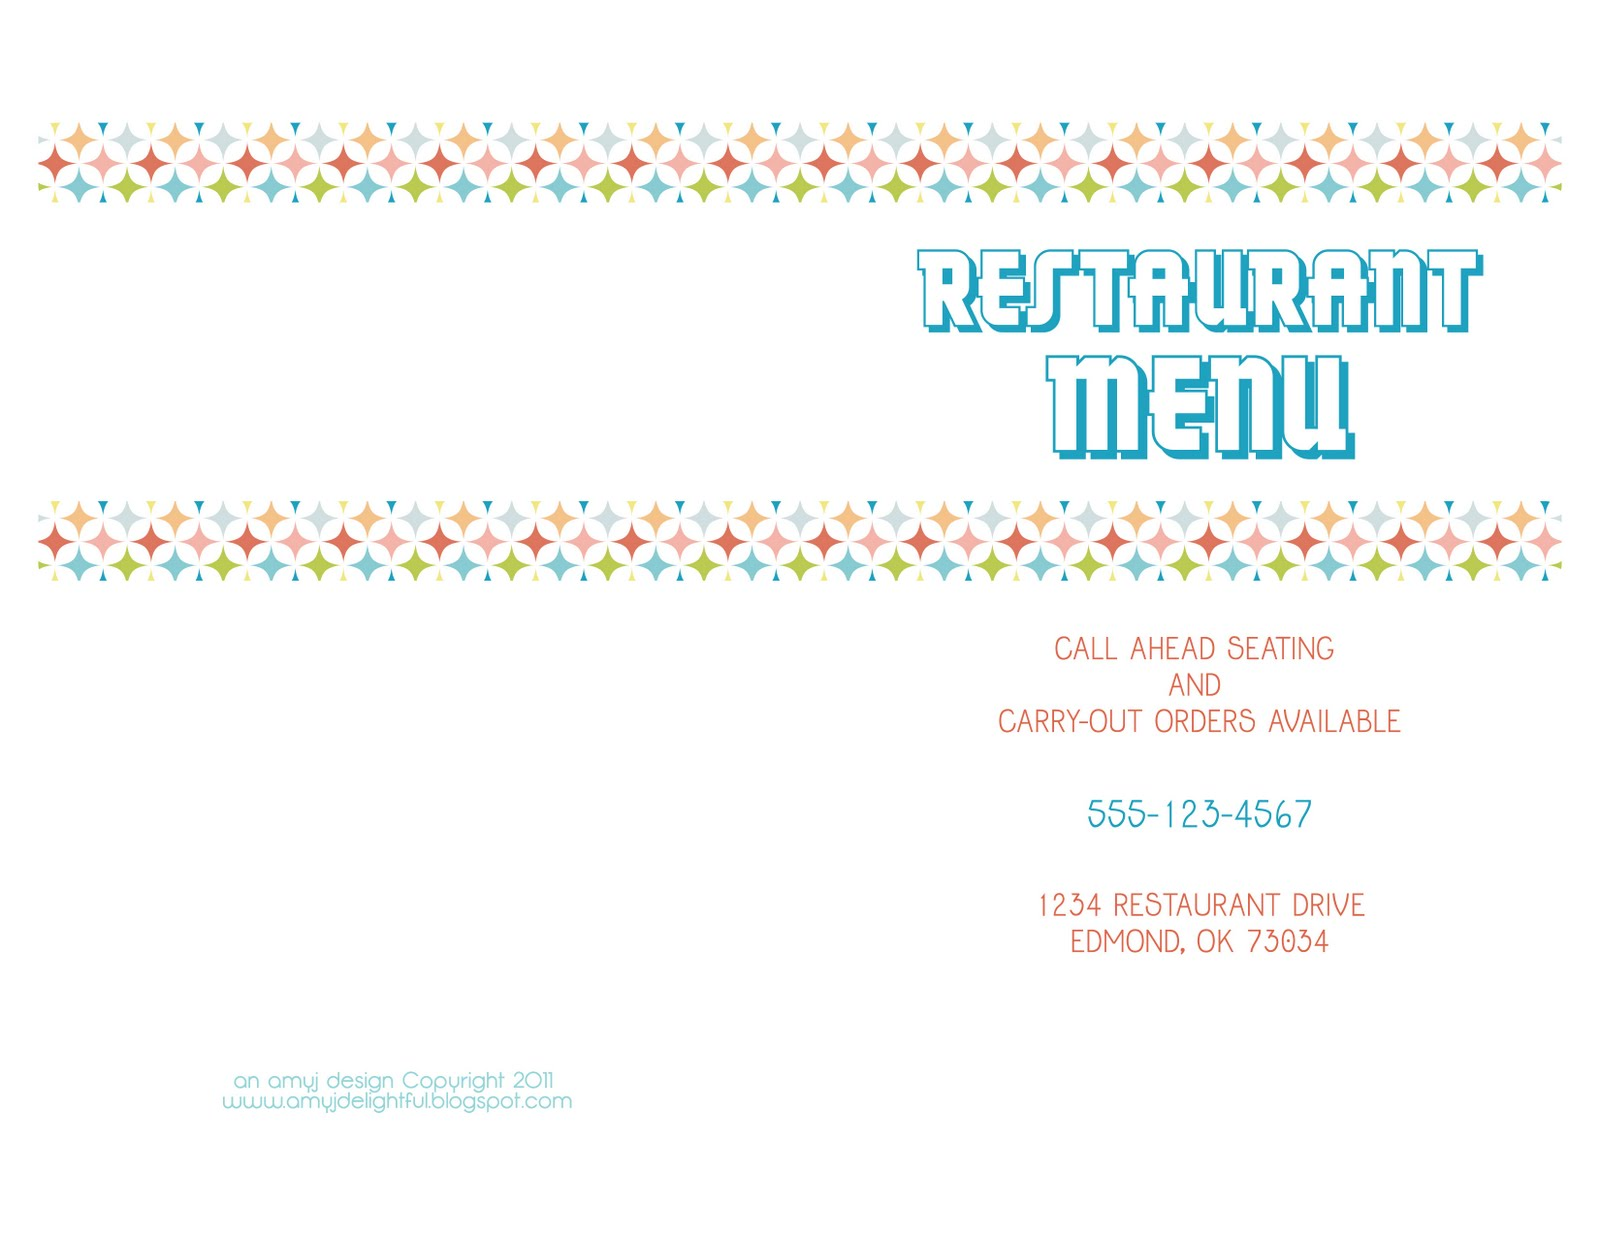 Amy J Delightful Blog Printable Menus For Playing Restaurant